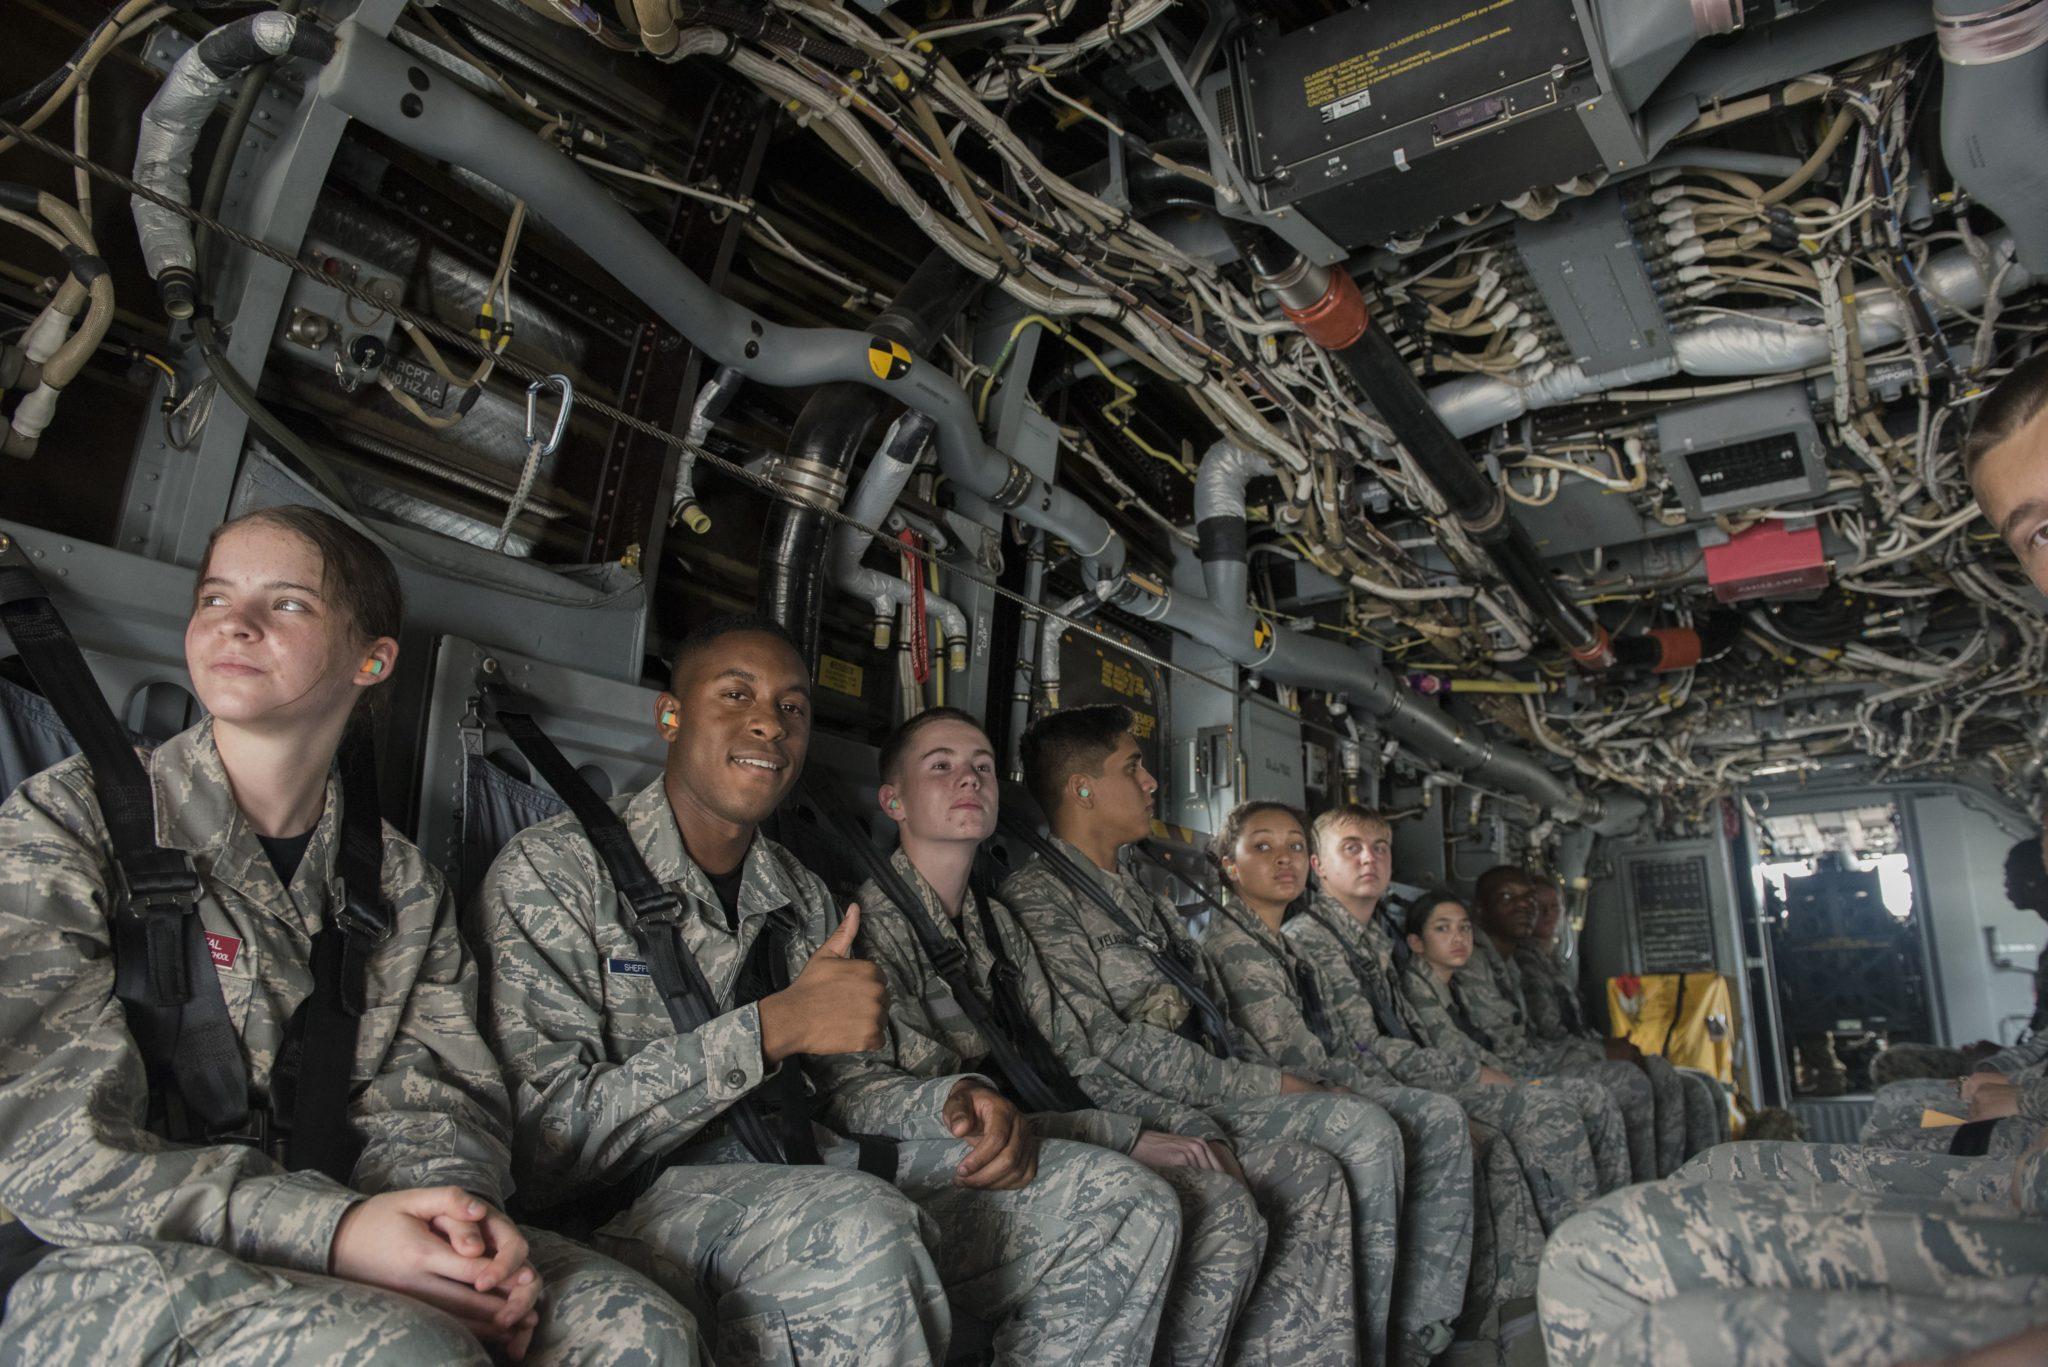 USAF Drops $2.4 Million in Scholarships To Get Cadets Private Pilot Licenses